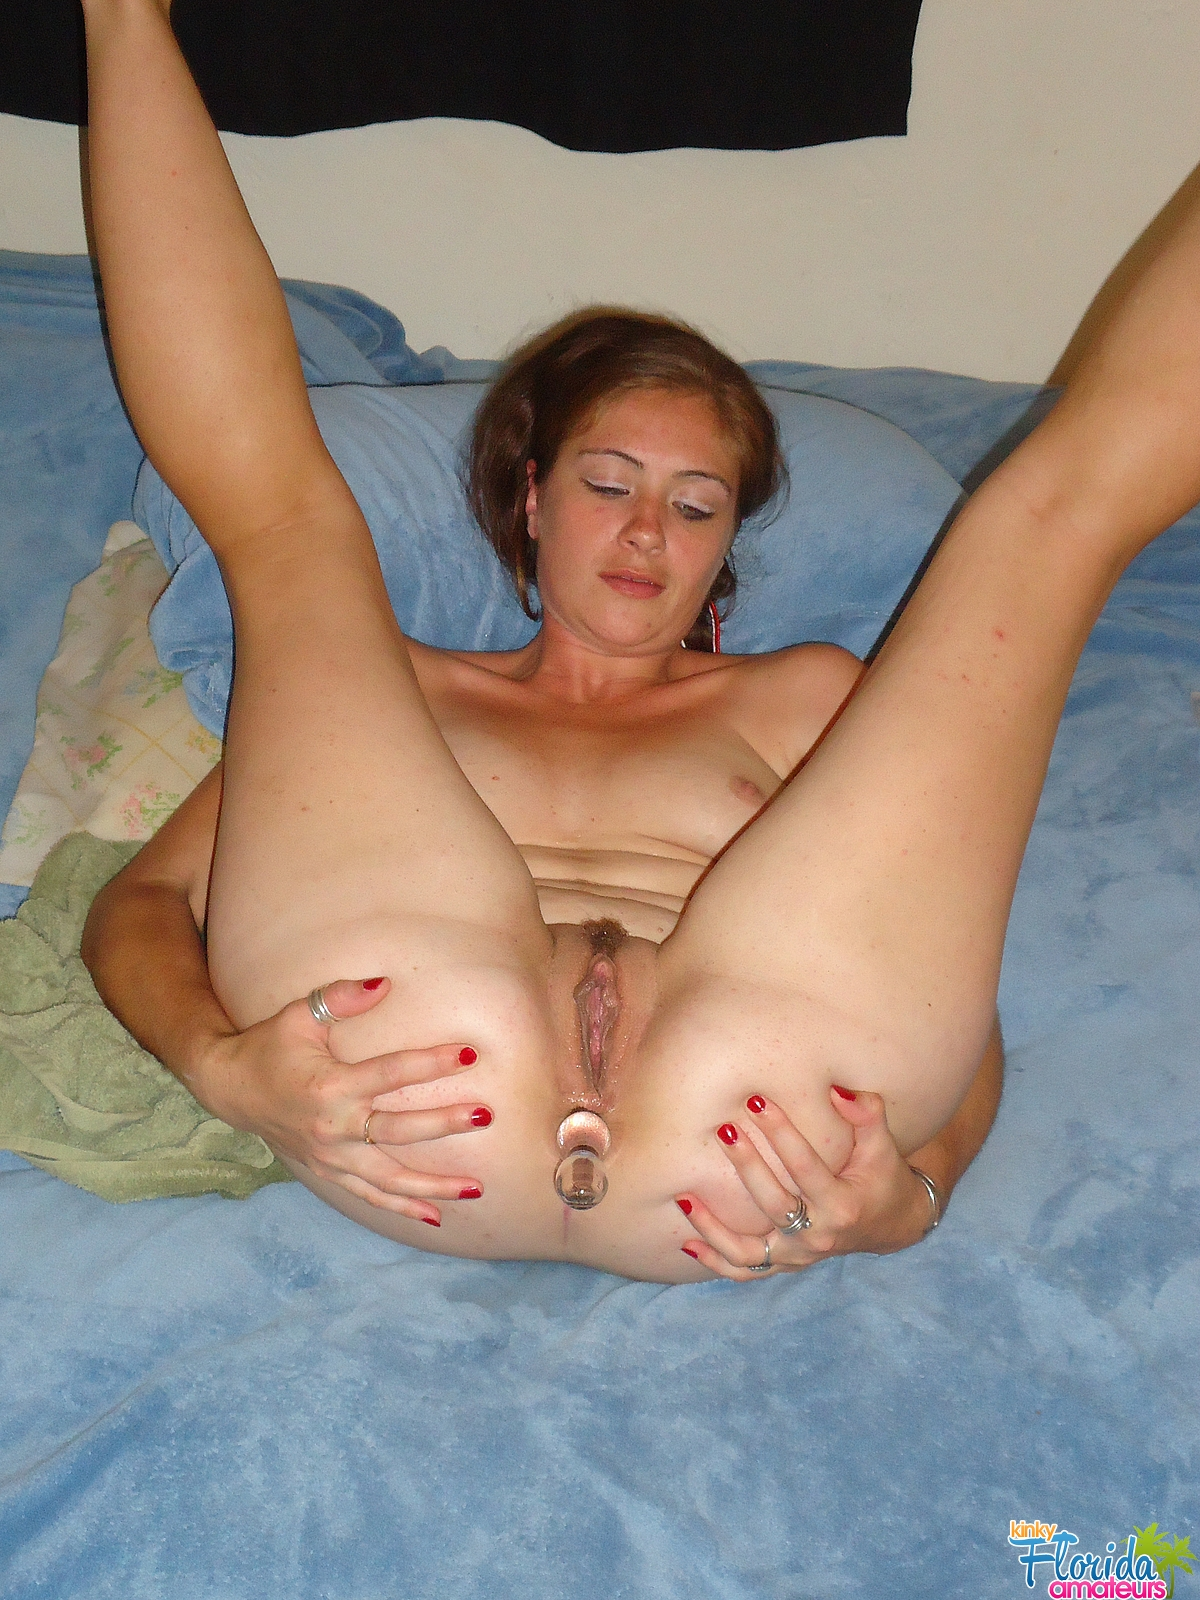 Free hot milf sites